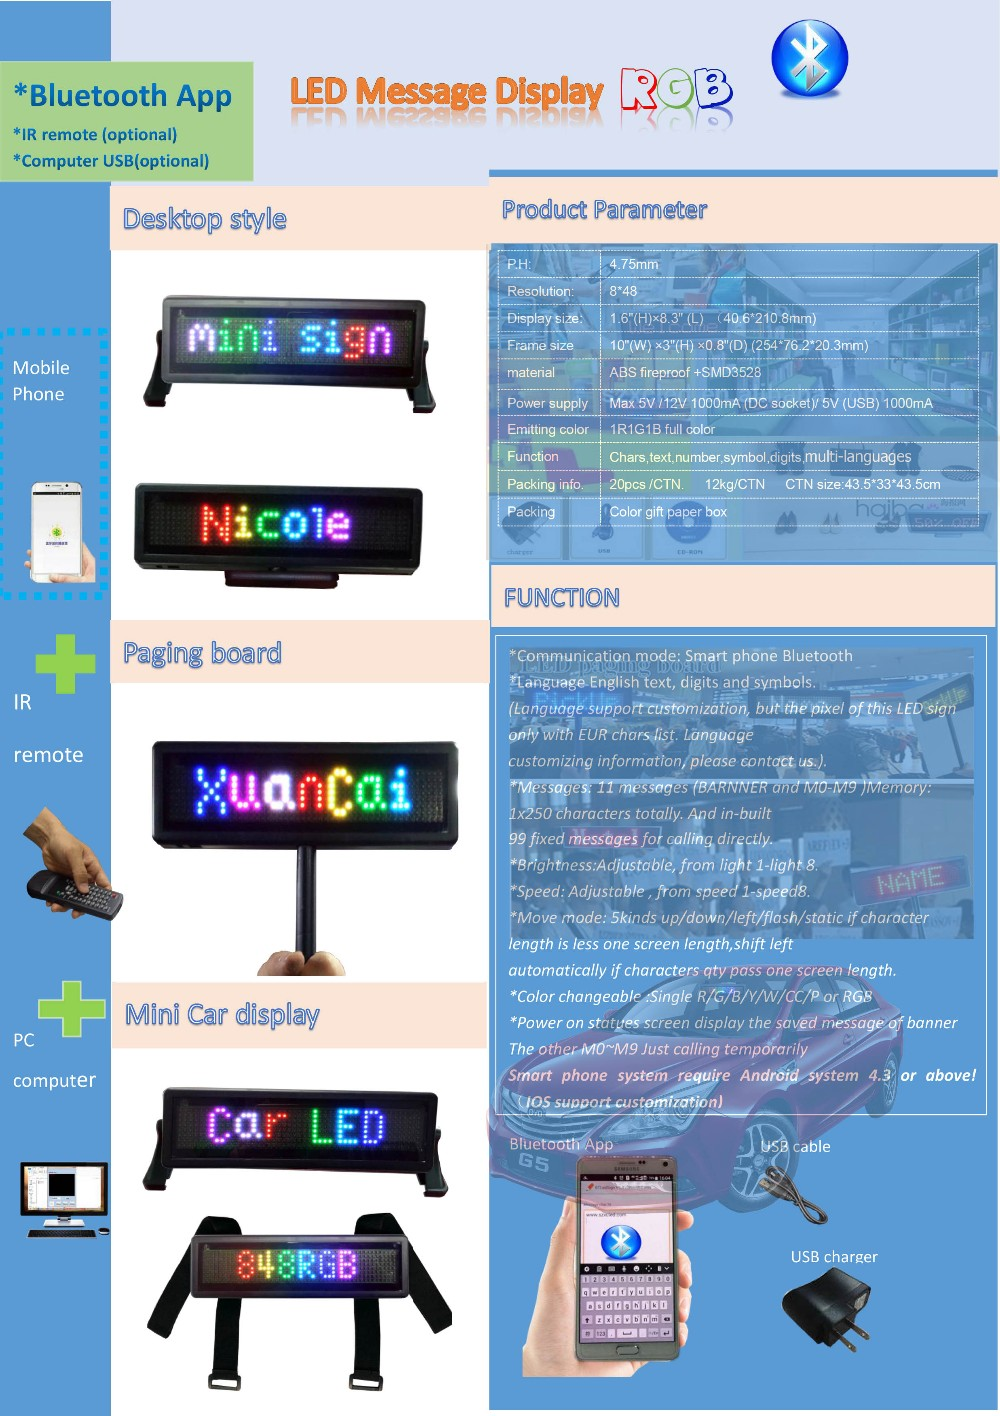 Full color RGB Rechargeable battery Nylon straps mounted car sun visors LED Mini car sign display screen